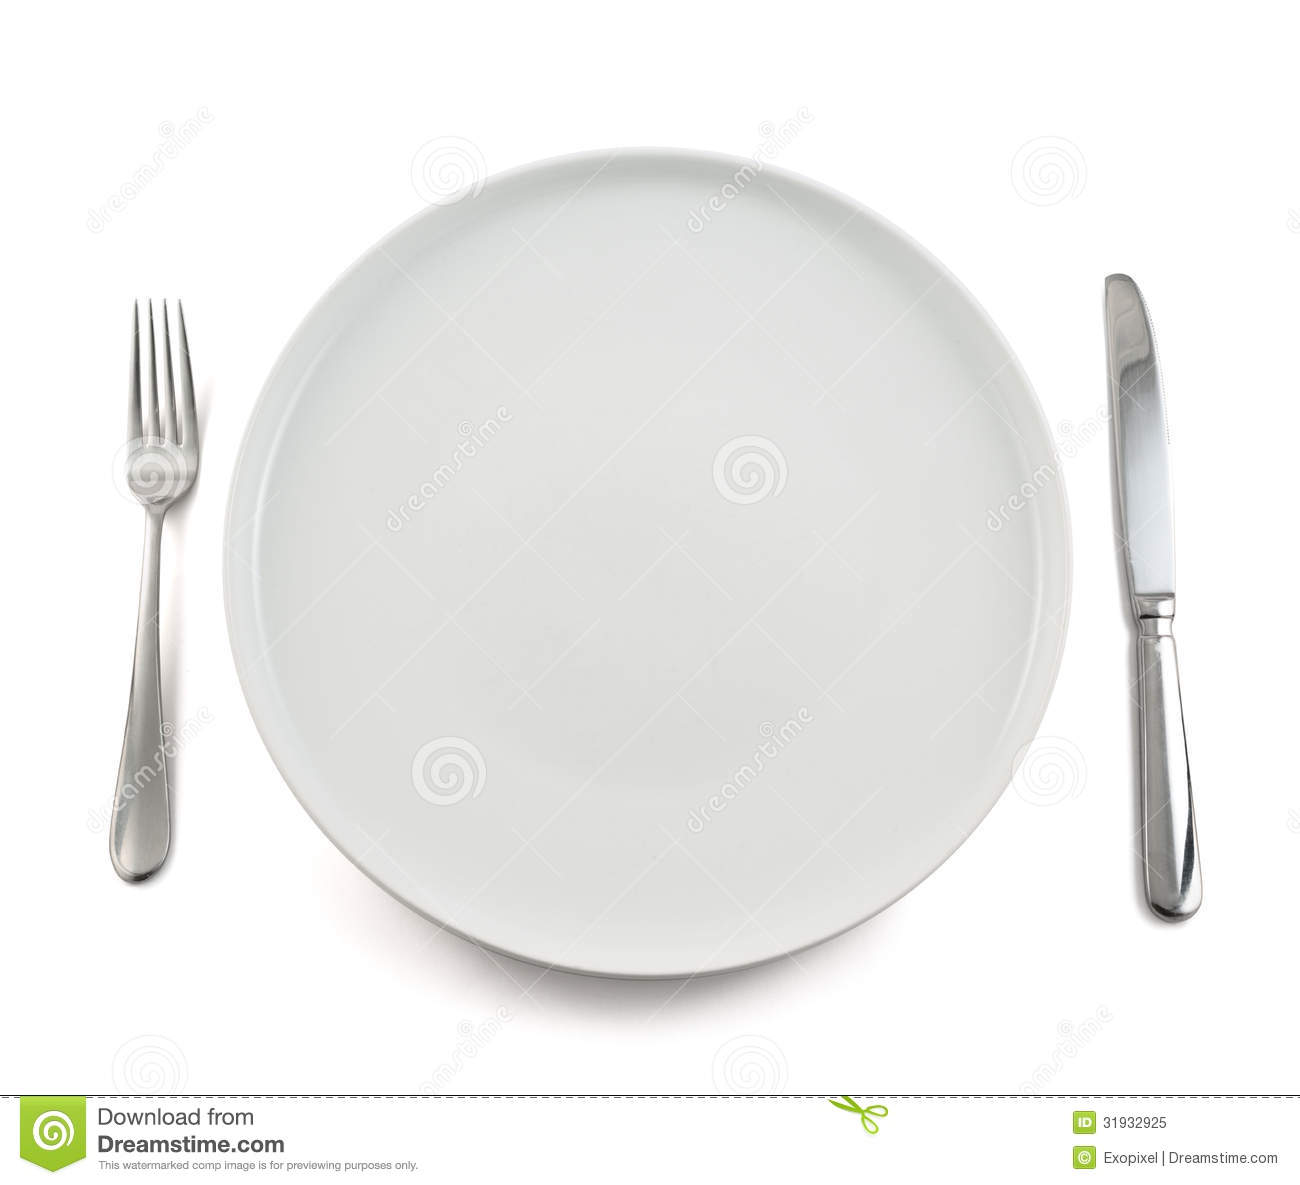 Background ceramic dinner dish empty fork isolated knife plate table top view white